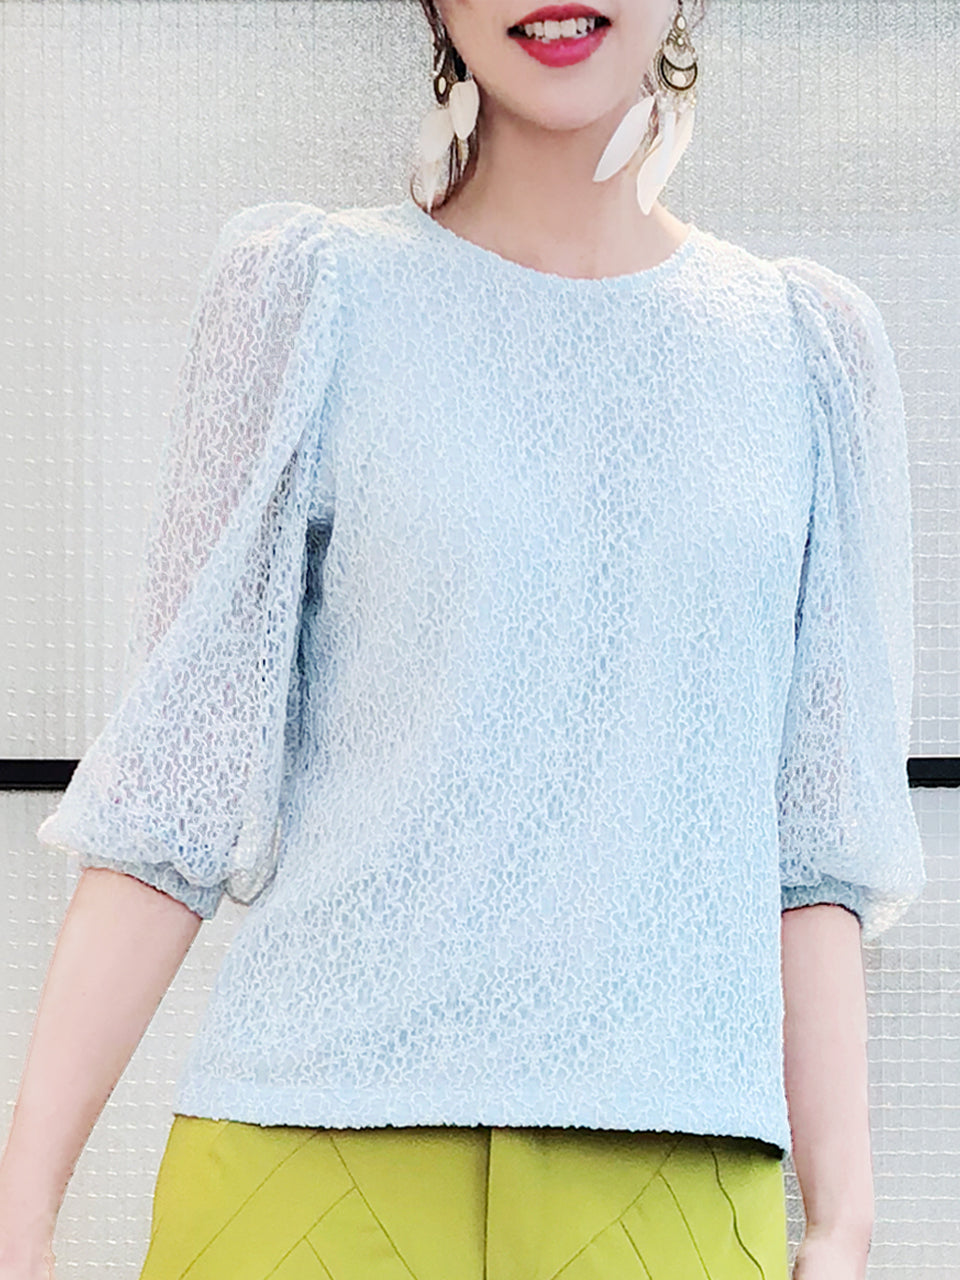 Surprise Sale! Light Blue Blouson Sleeves Embroidery Lace Blouse